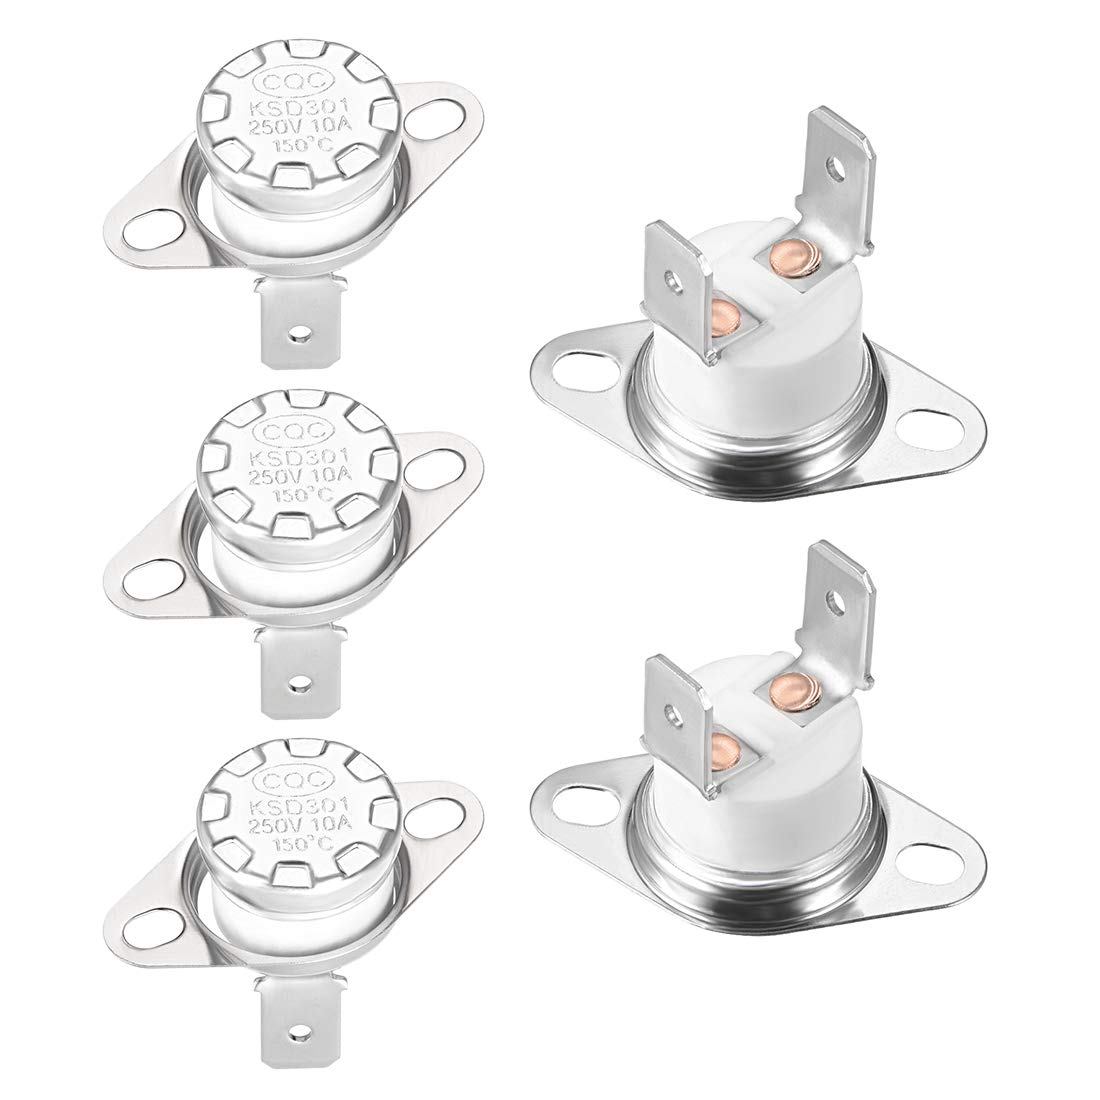 uxcell KSD301 Thermostat 150°C 10A Normally Closed N.C Adjust Snap Disc Limit Control Switch Microwave Thermostat Thermal Switch 5pcs